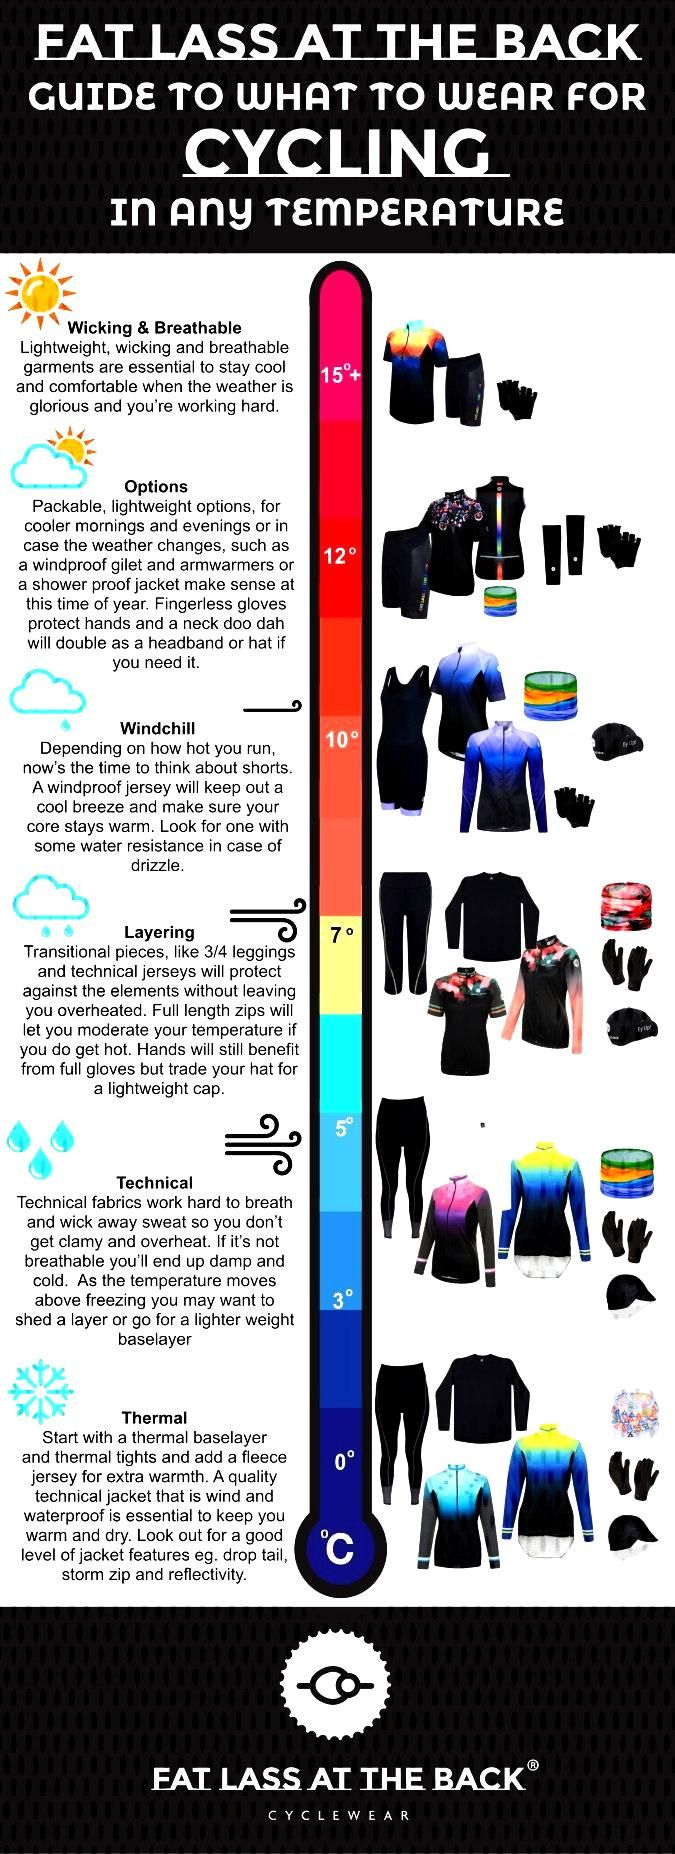 Womens what to wear in all temperatures for cycling